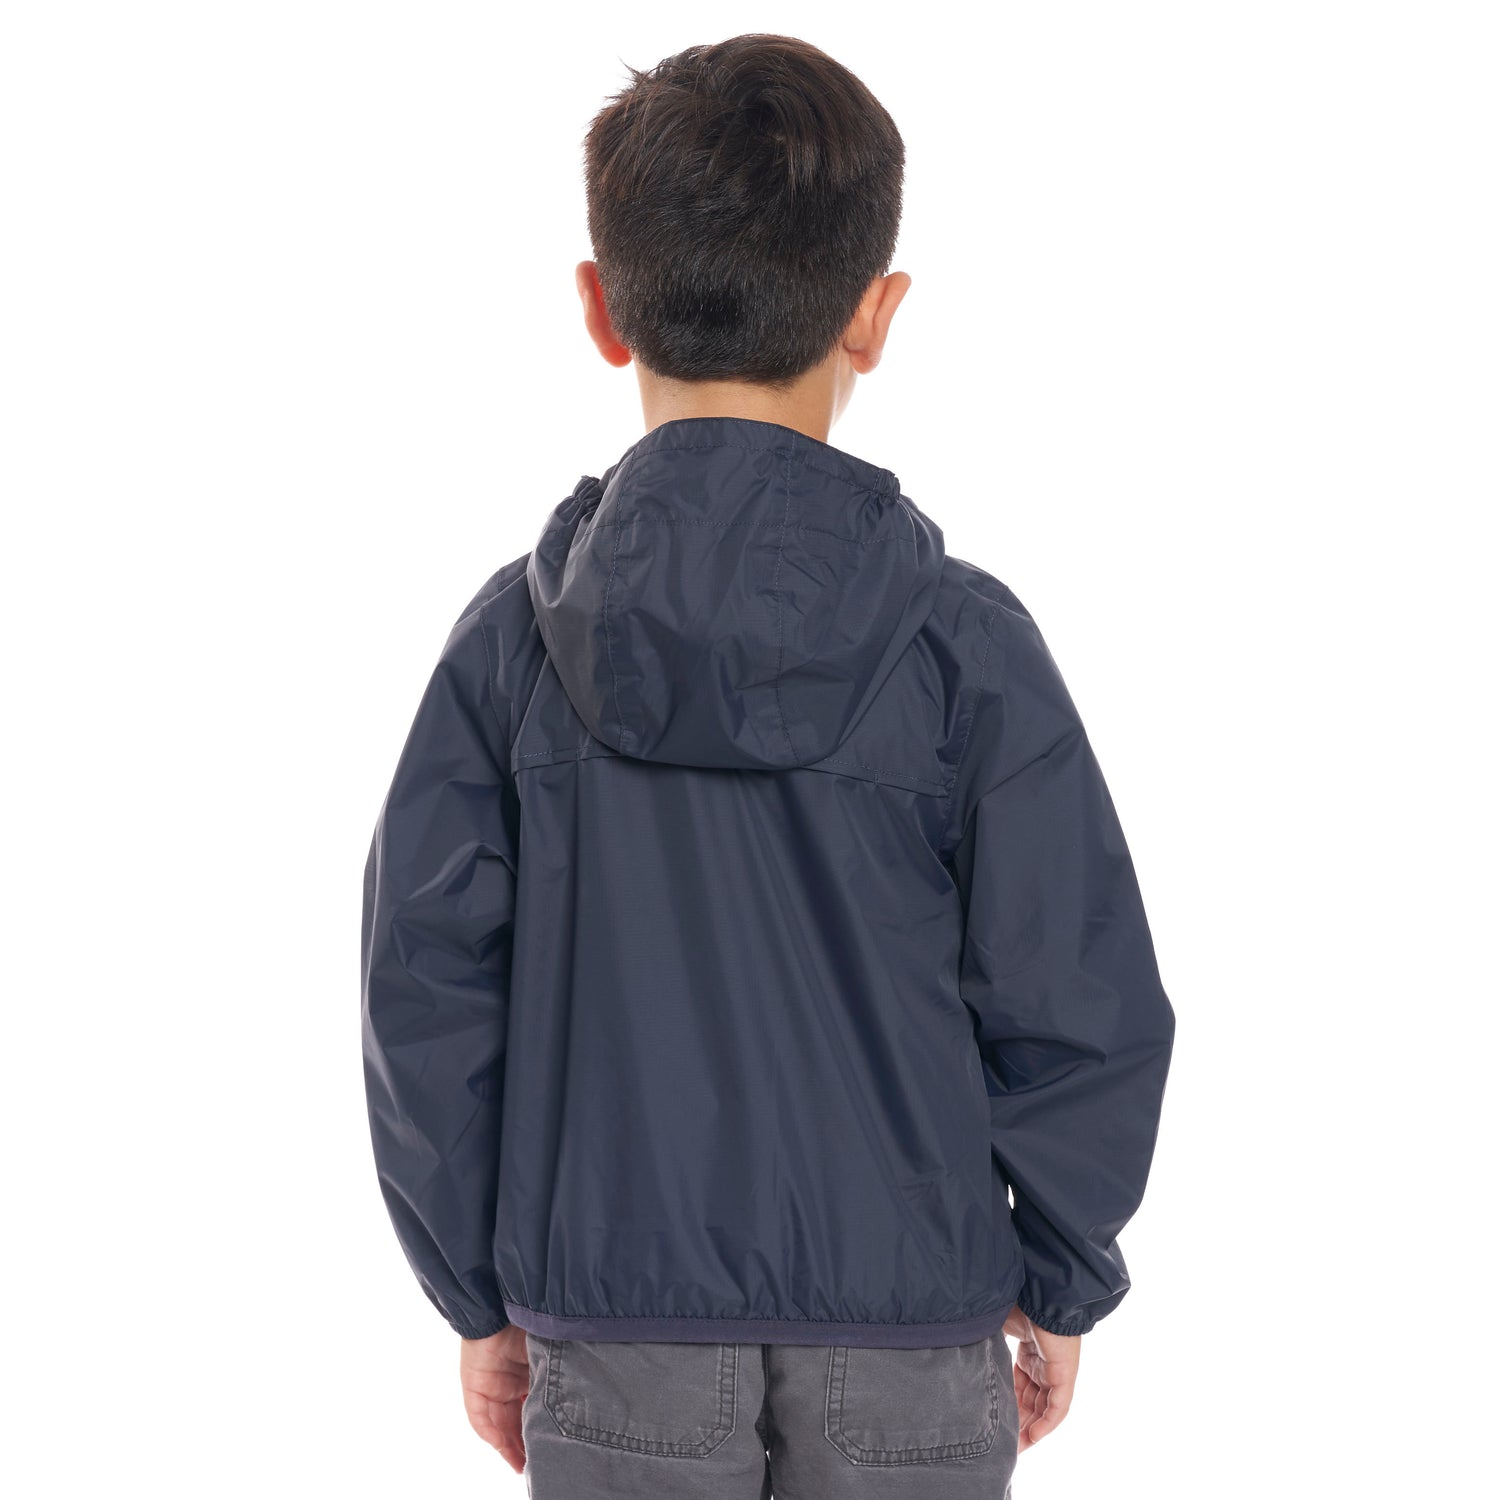 Kids Le Vrai 3.0 Claude Jacket Blue Depth - Back